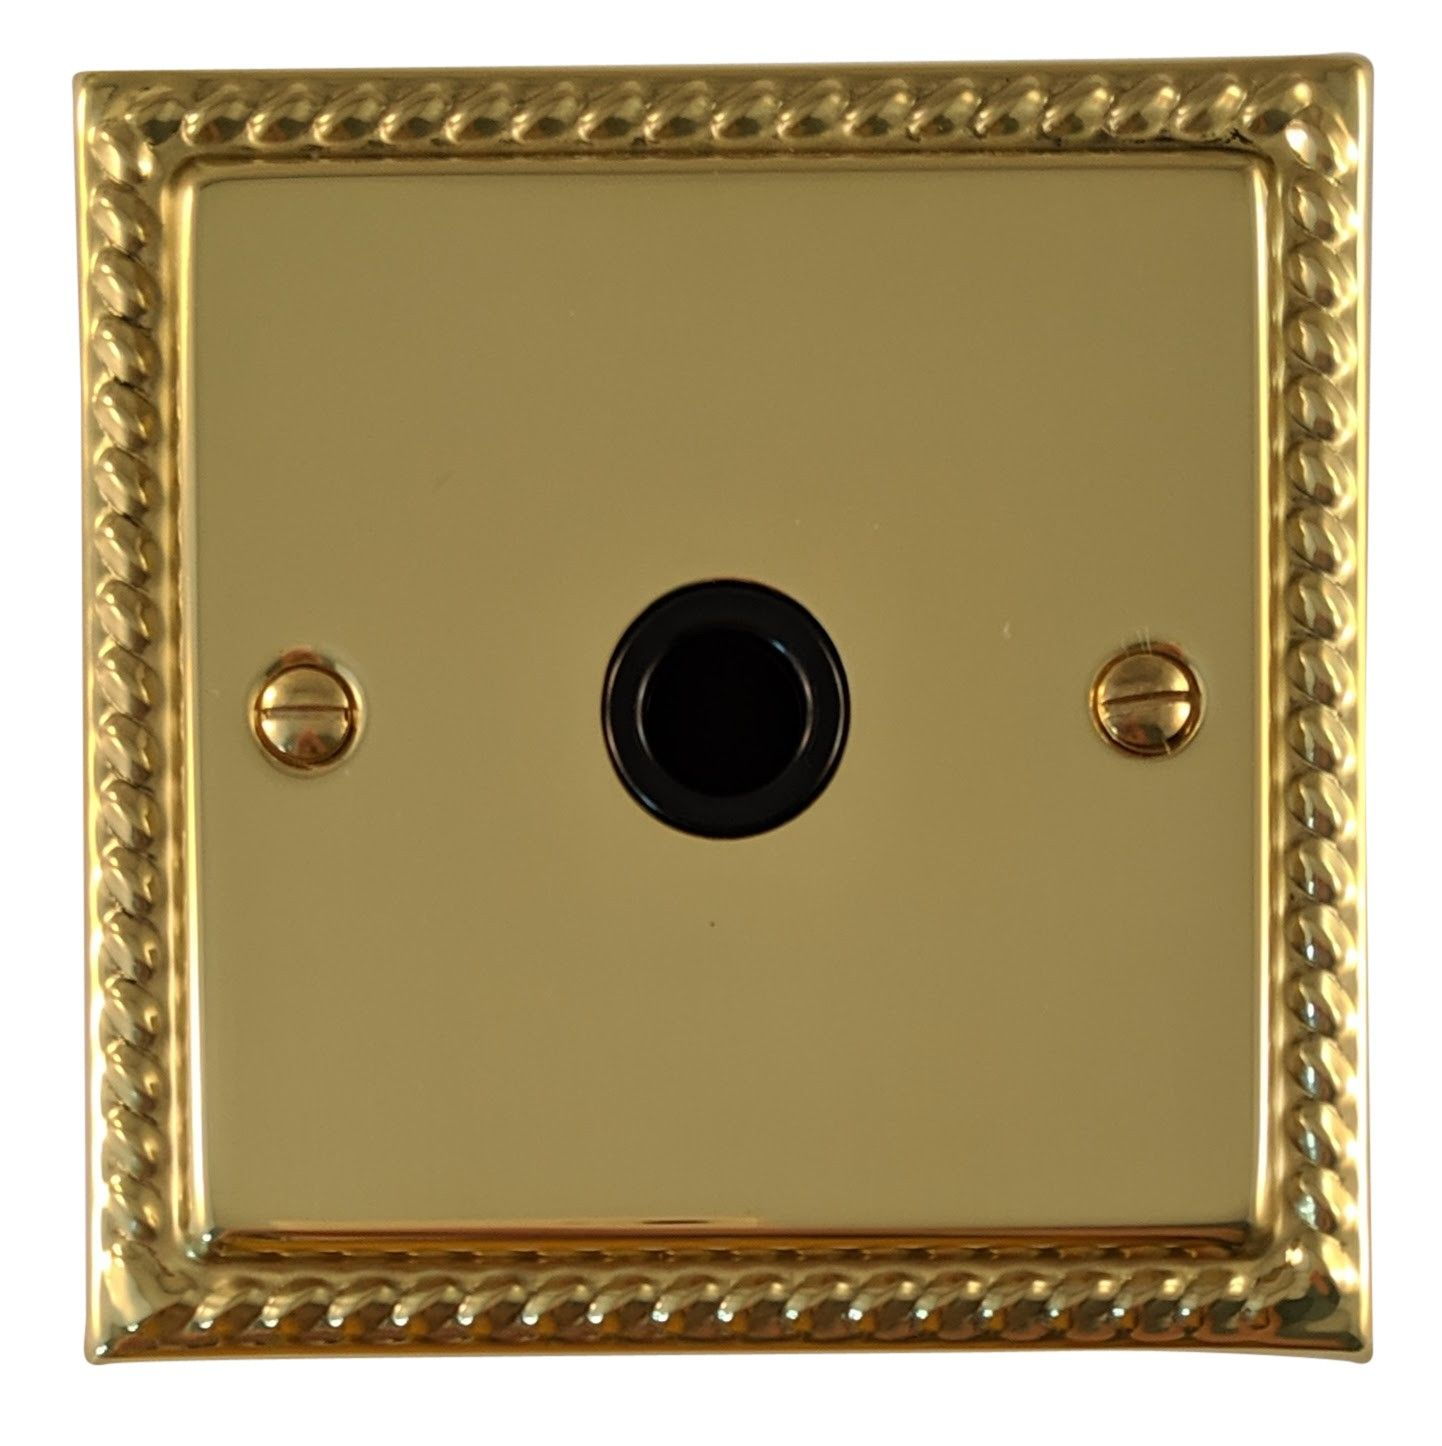 G&H MB79B Monarch Roped Polished Brass 1 Gang Flex Outlet Plate